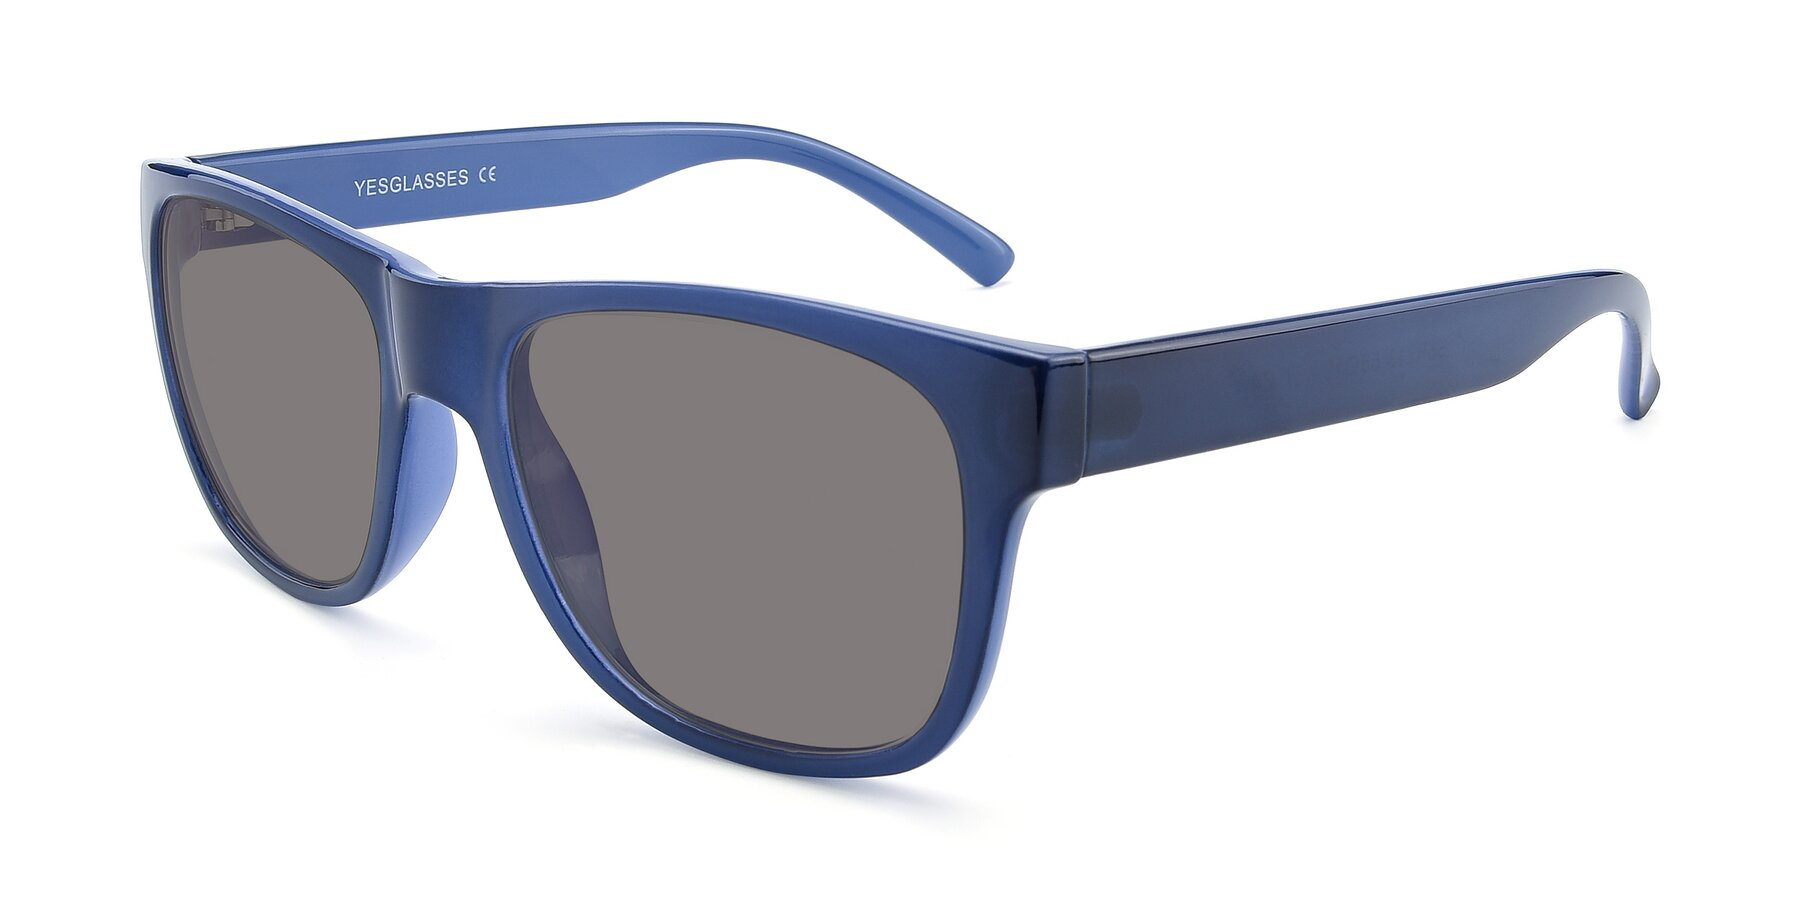 Angle of SSR213 in Blue with Medium Gray Tinted Lenses